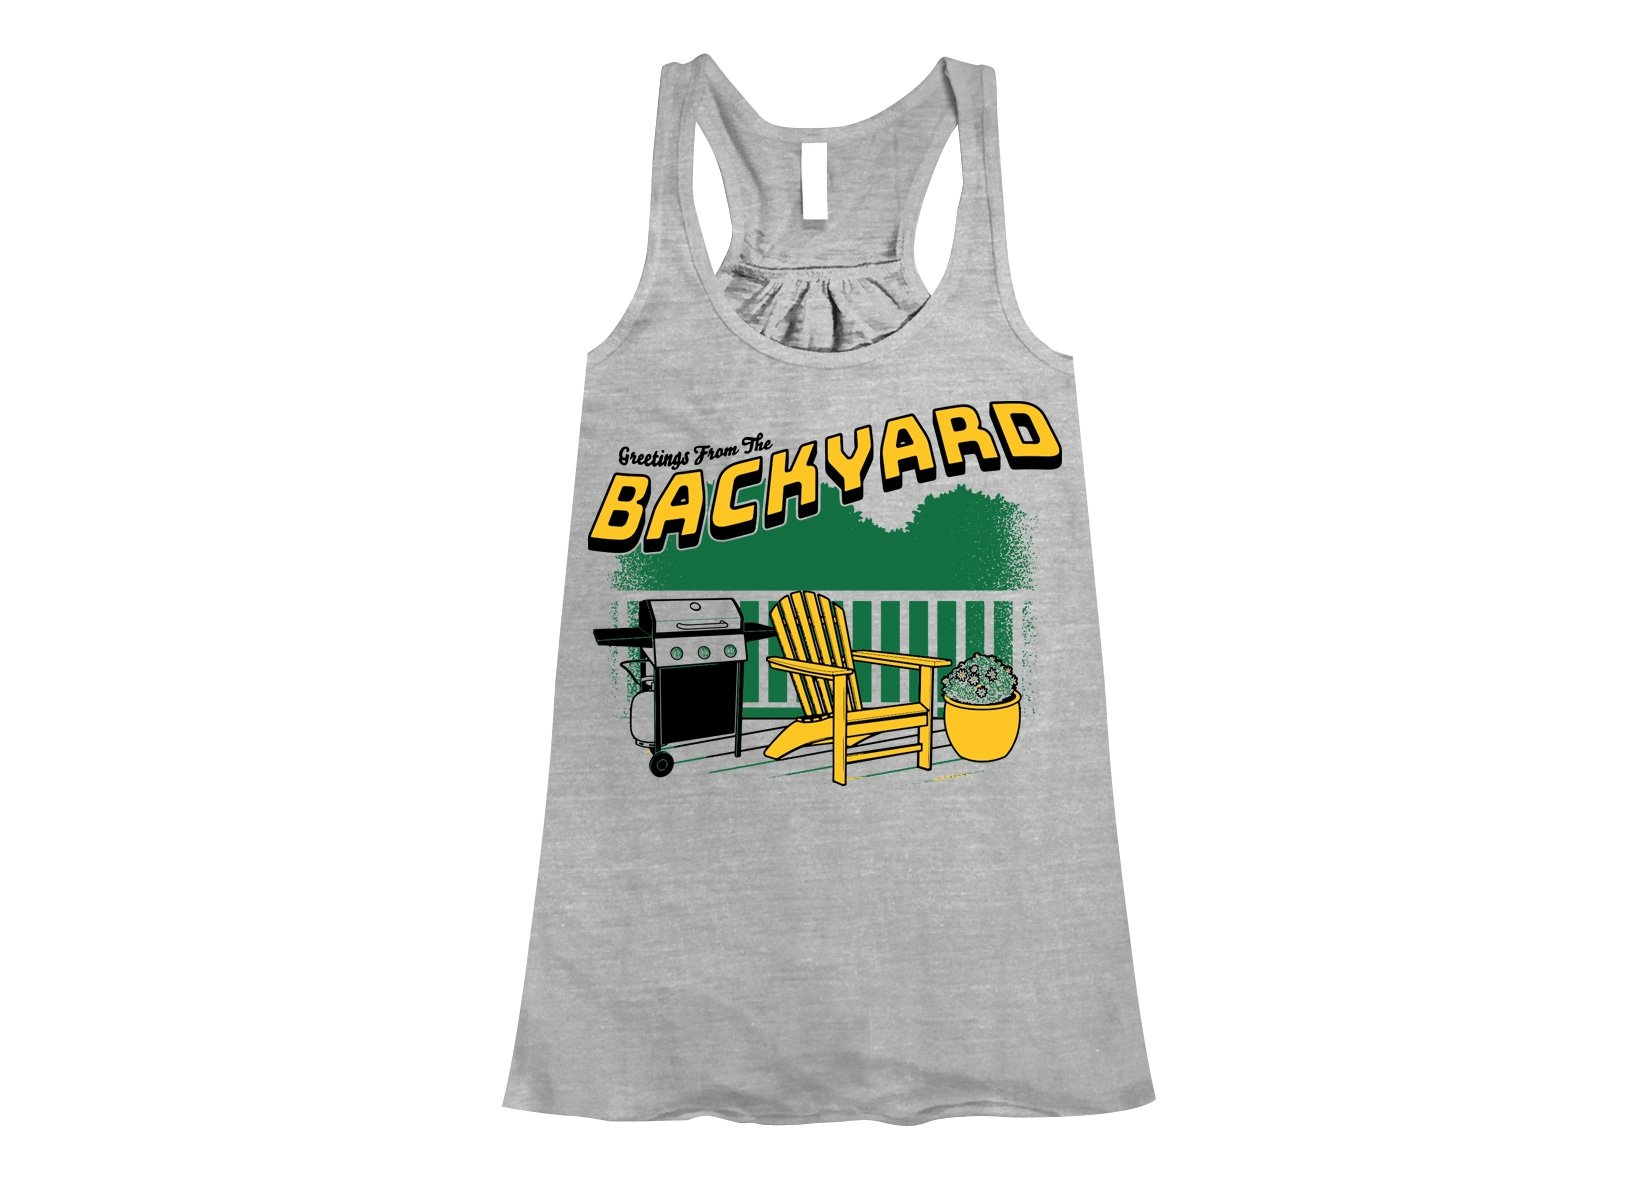 Greetings From The Backyard on Womens Tanks T-Shirt